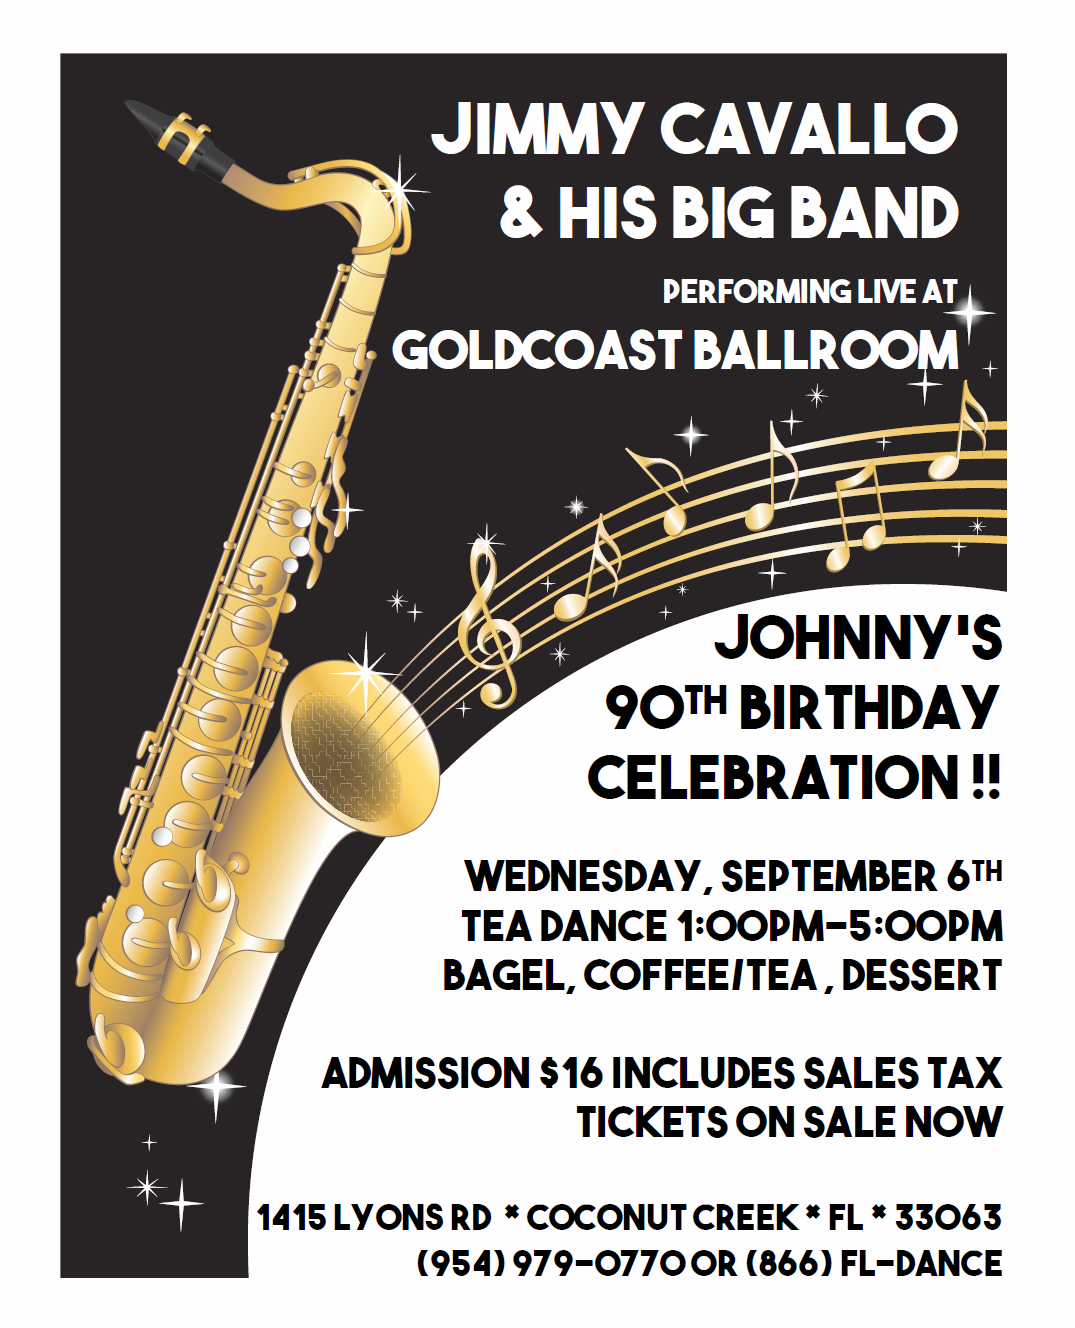 CLICK HERE to print Flyer: Jimmy Cavallo & His Big Band Live at Goldcoast Ballroom - September 6, 2017 (1:00 PM - 5:00 PM) - Celebrate Johnny's 90th Birthday!!